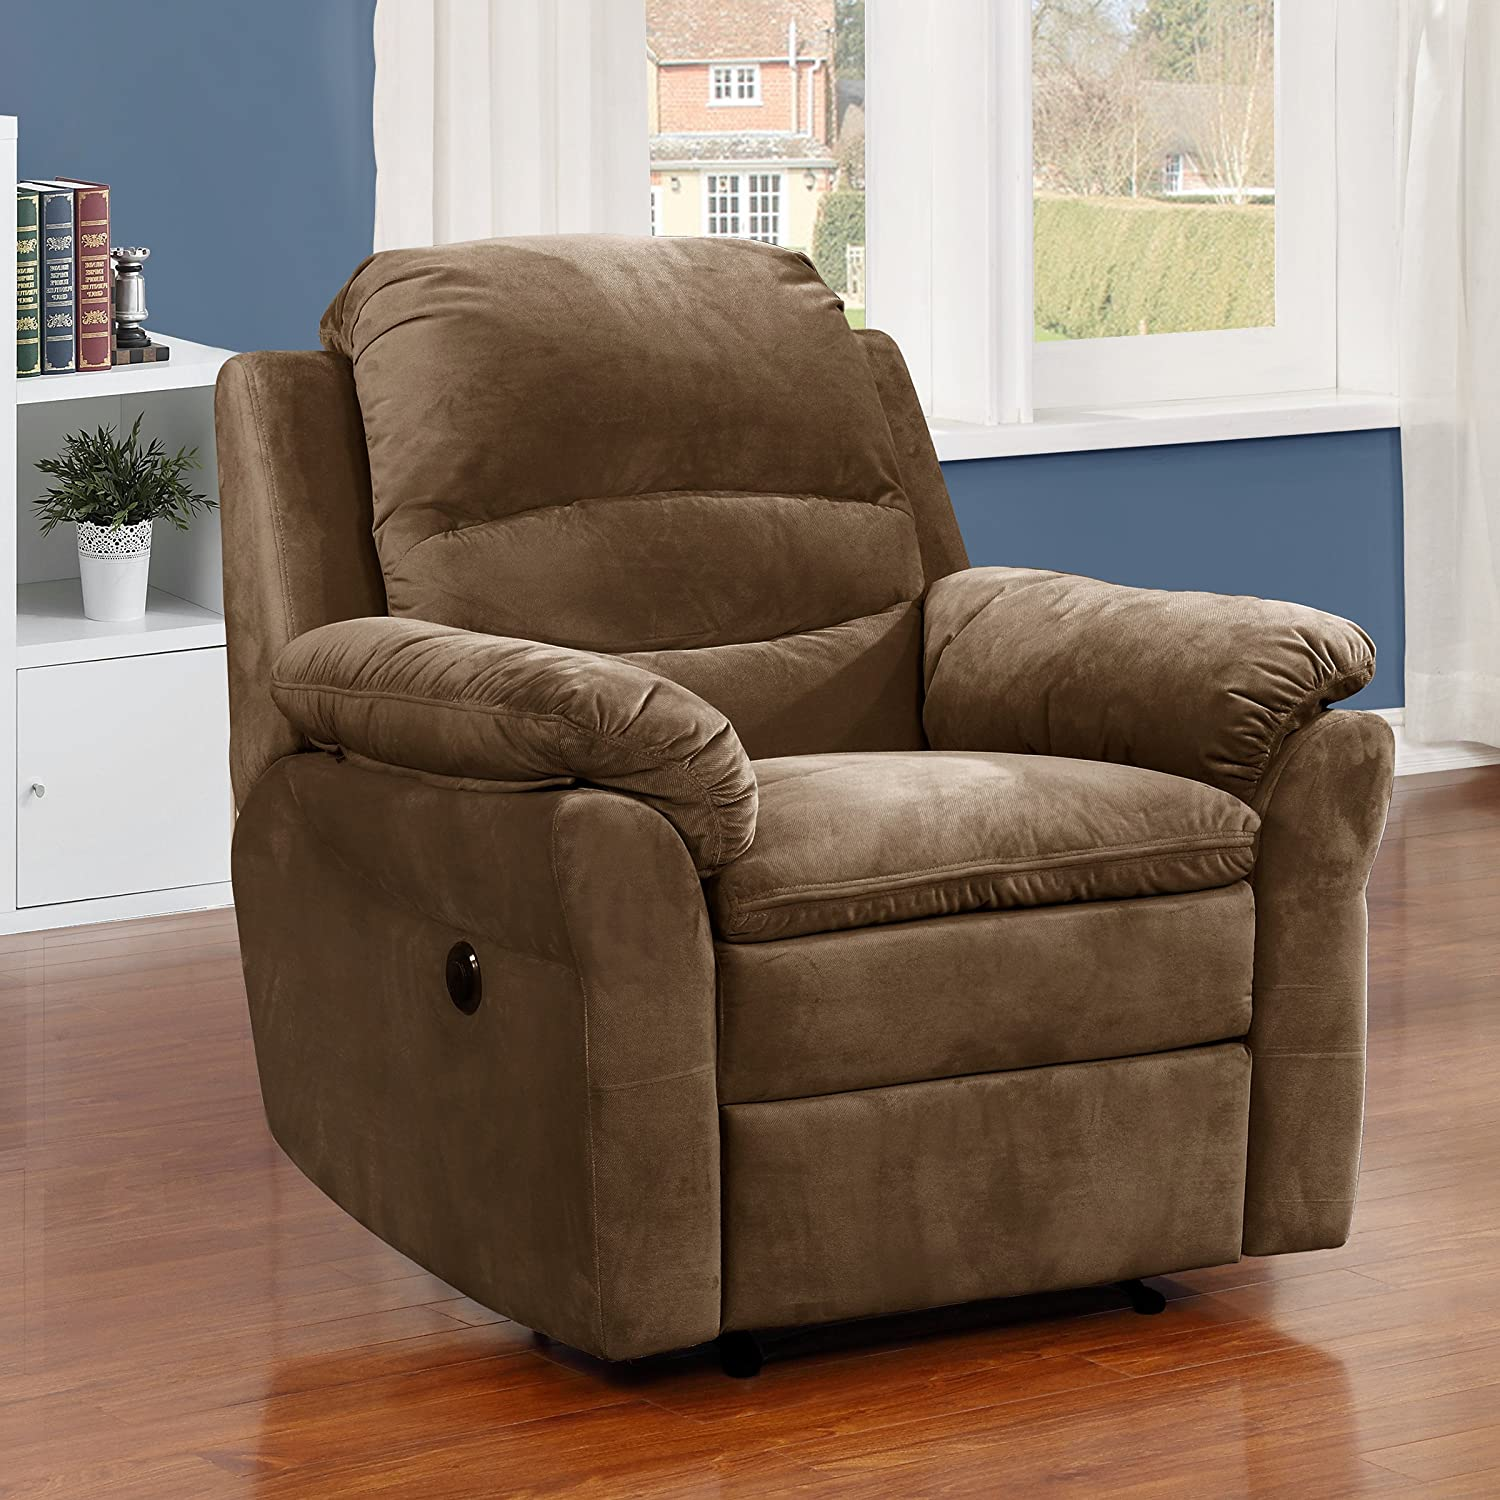 Stupendous Ac Pacific Felix Collection Contemporary Style Fabric Upholstered Living Room Electric Recliner Power Chair Brown Machost Co Dining Chair Design Ideas Machostcouk